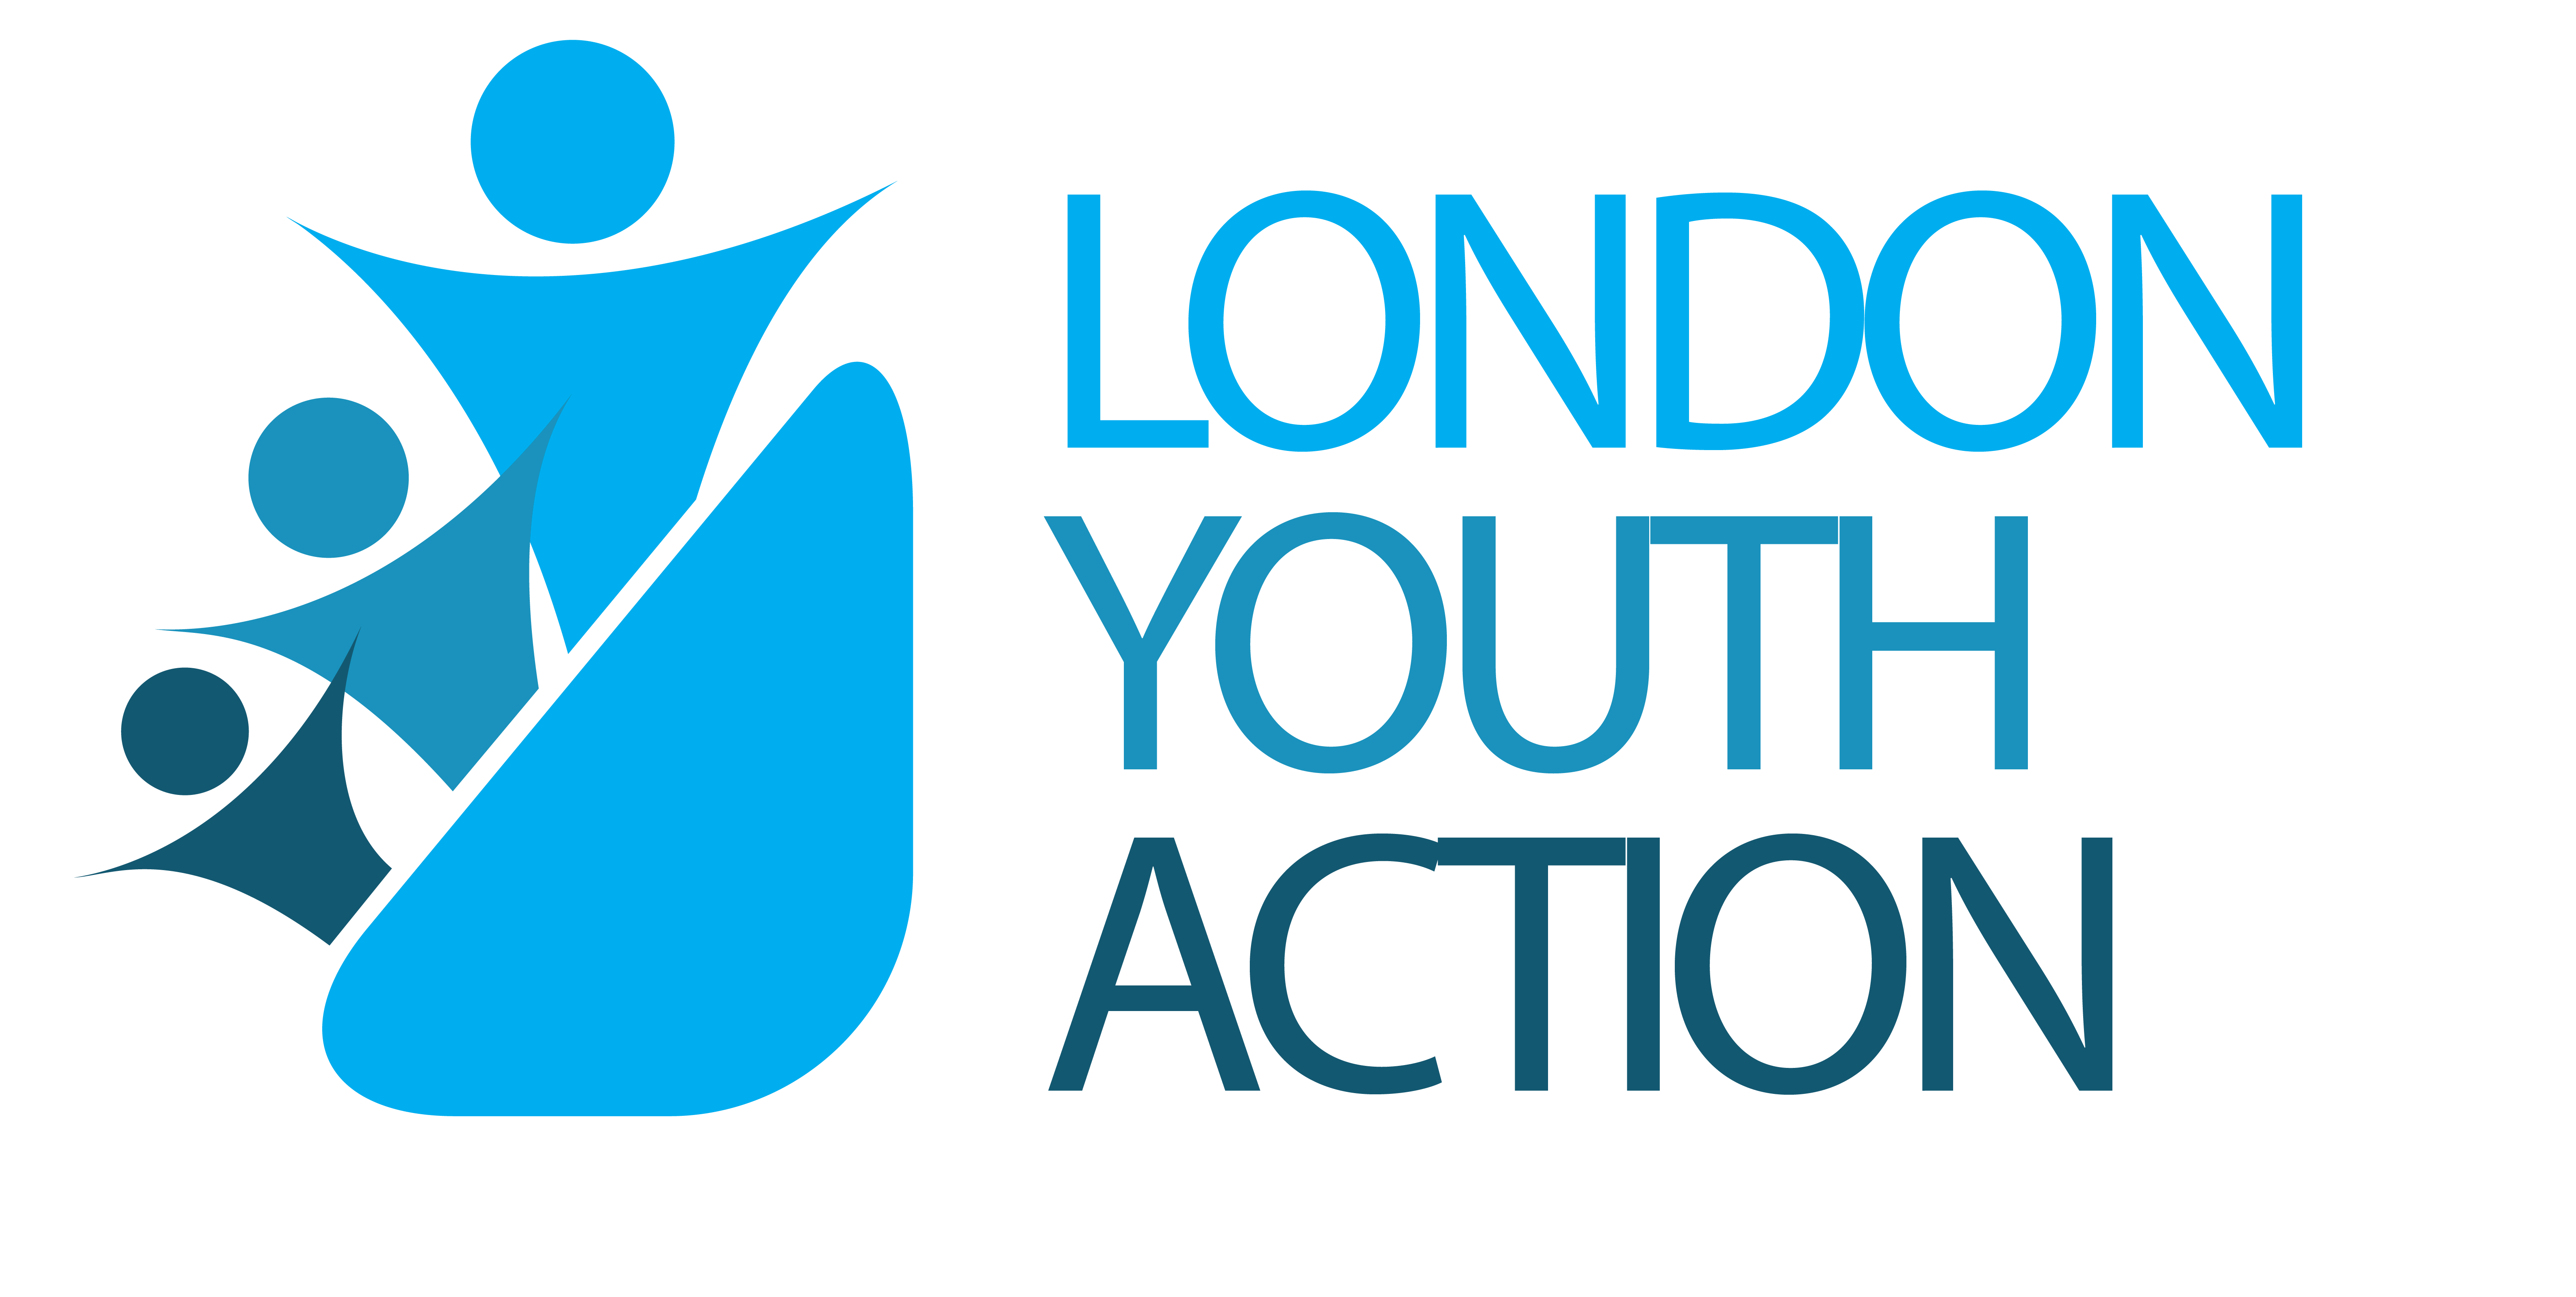 London Youth Action